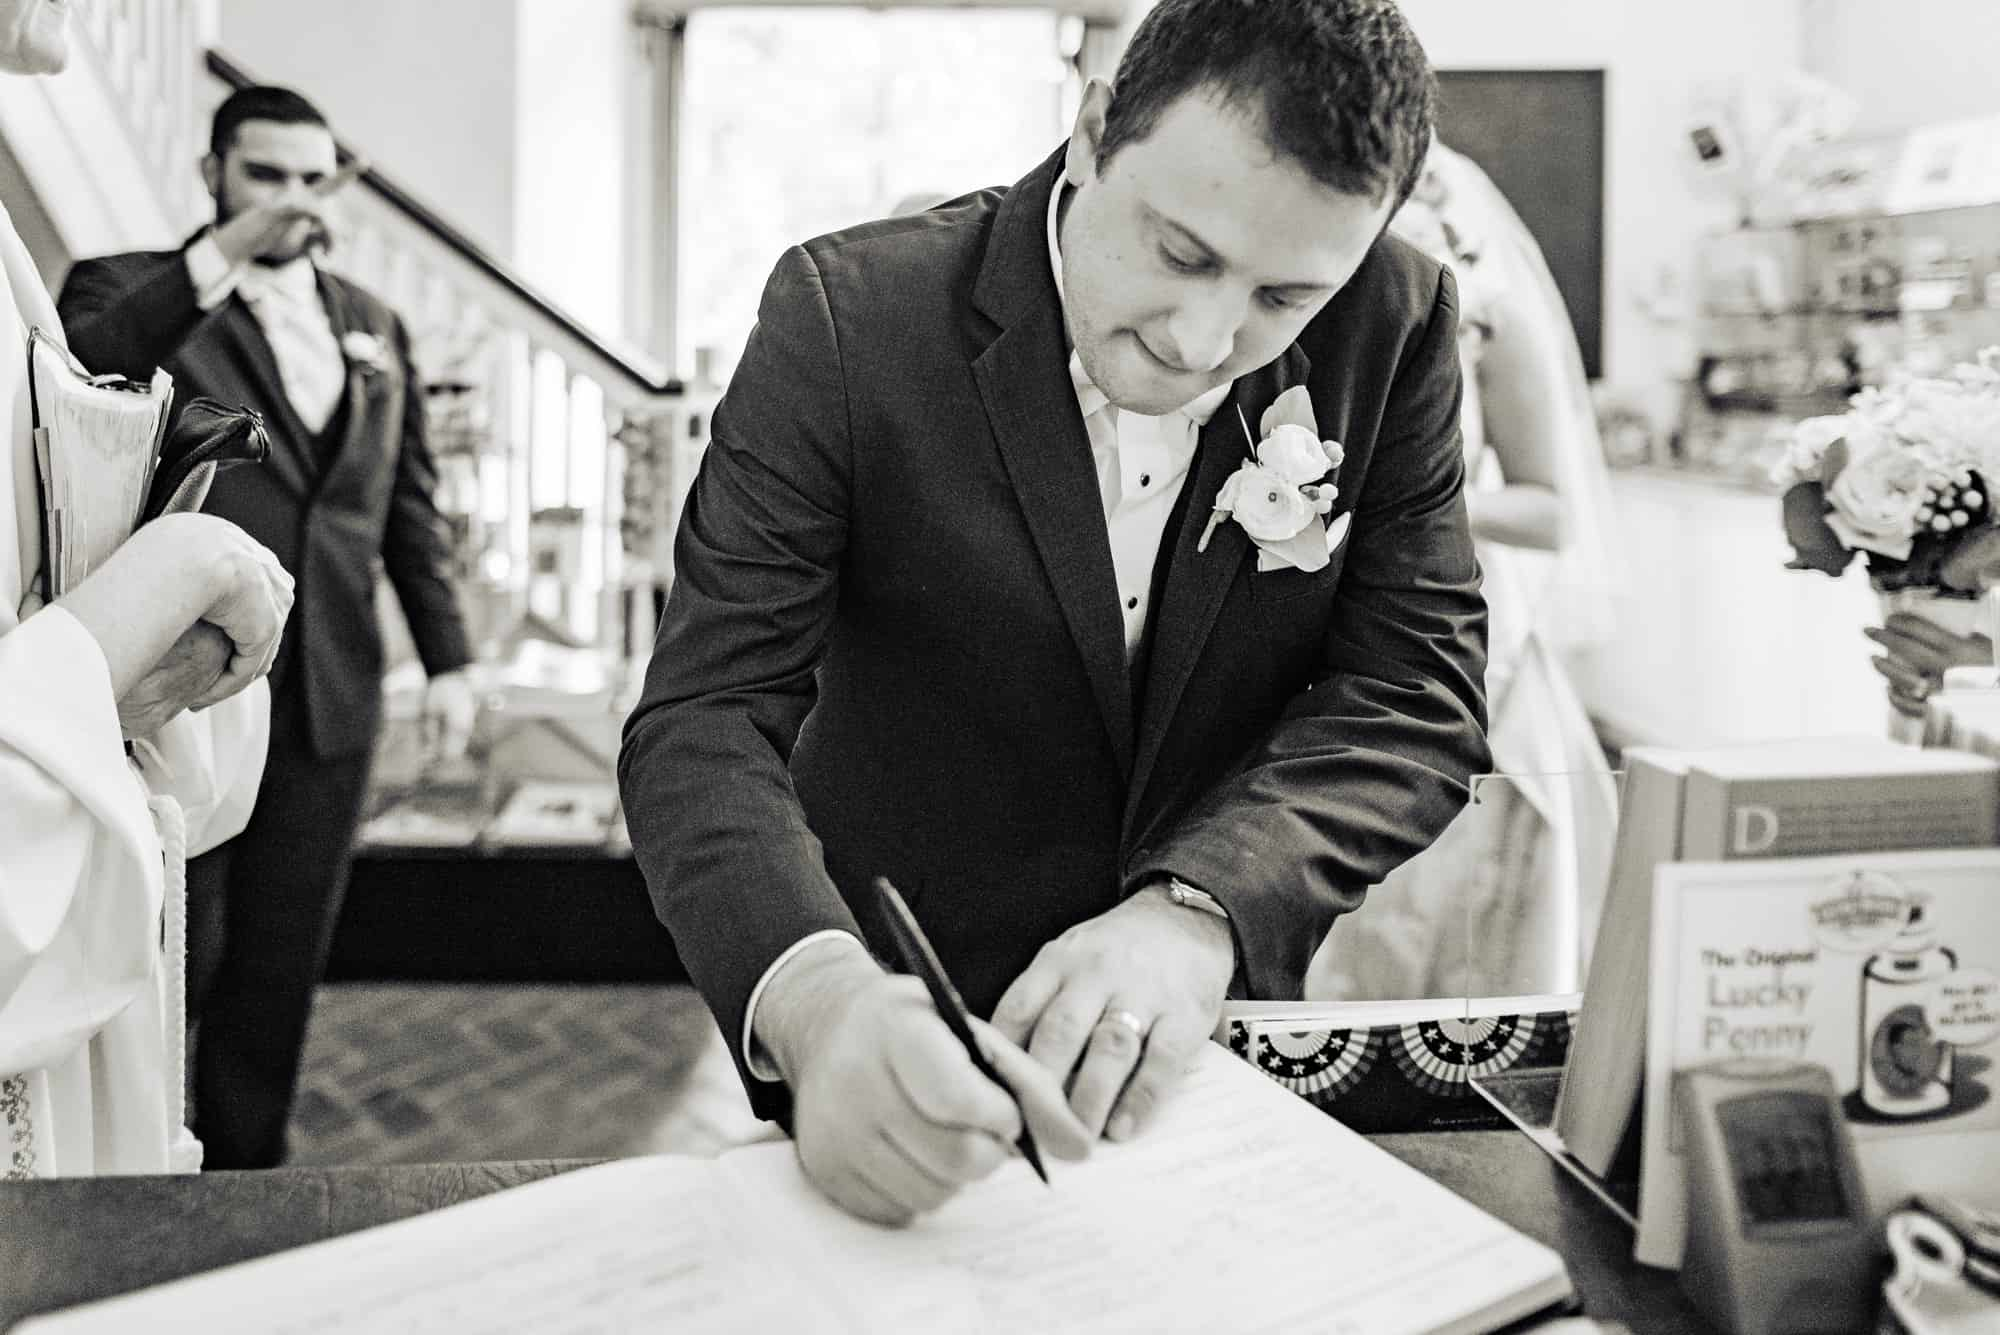 wedding day, groom signing book in lobby after ceremony